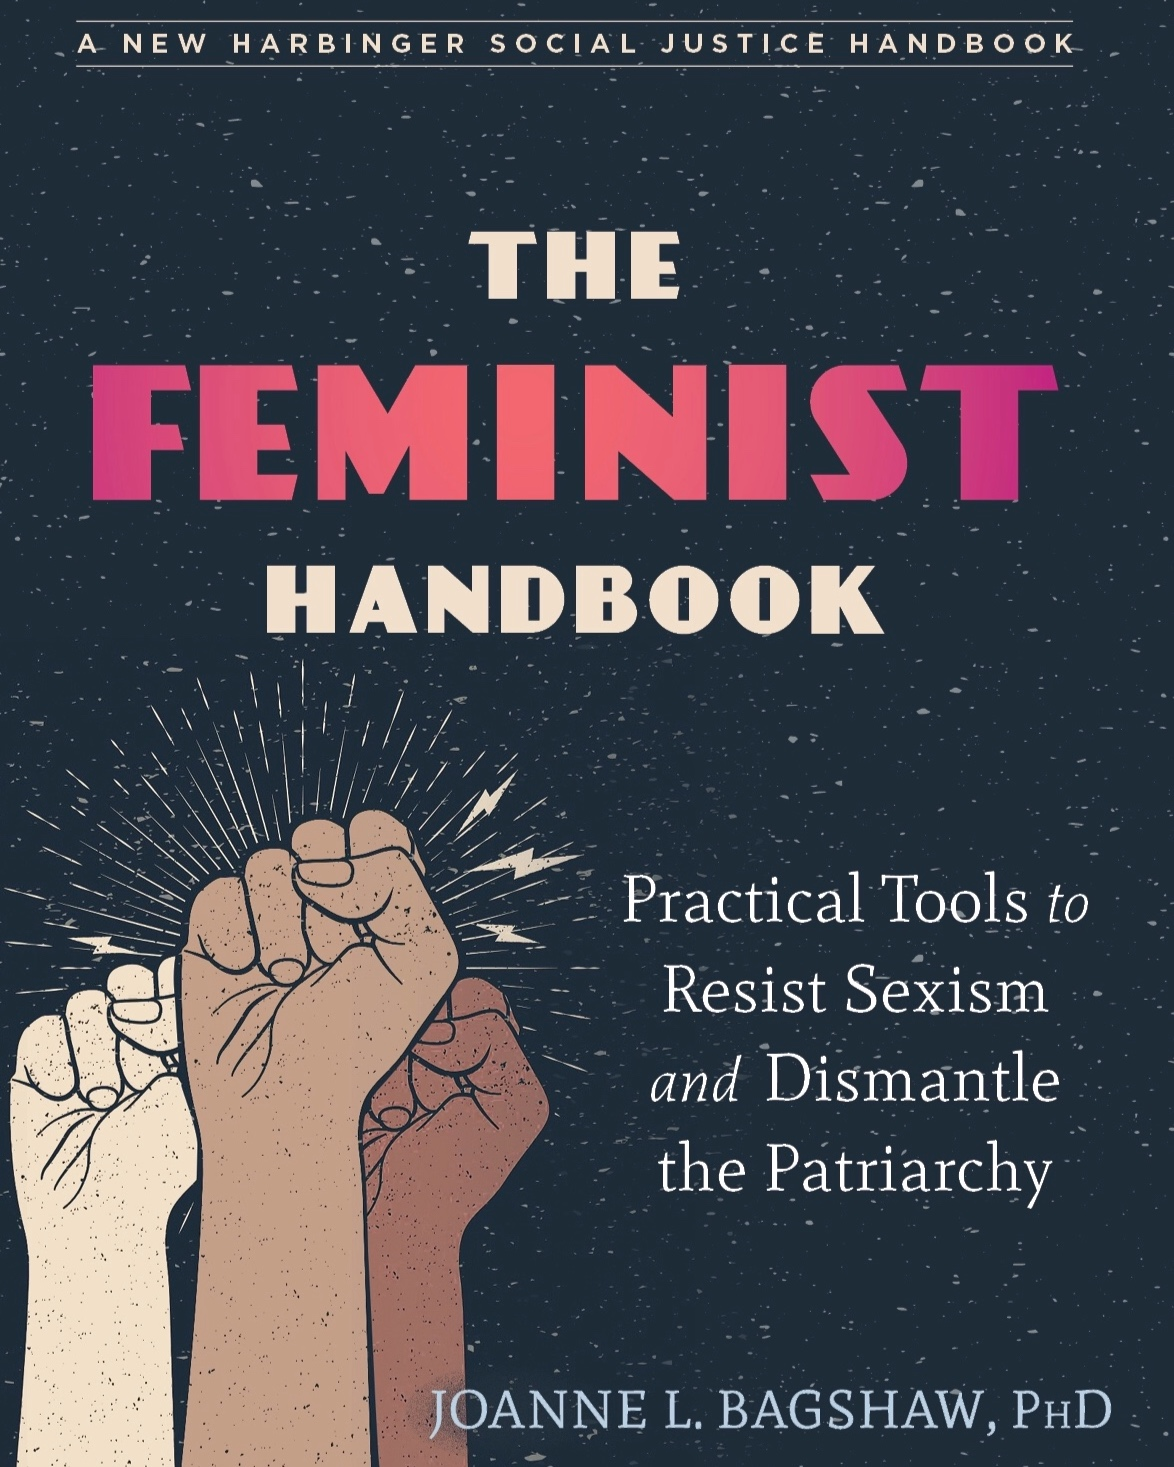 The Feminist Handbook - Click Here to Preorder